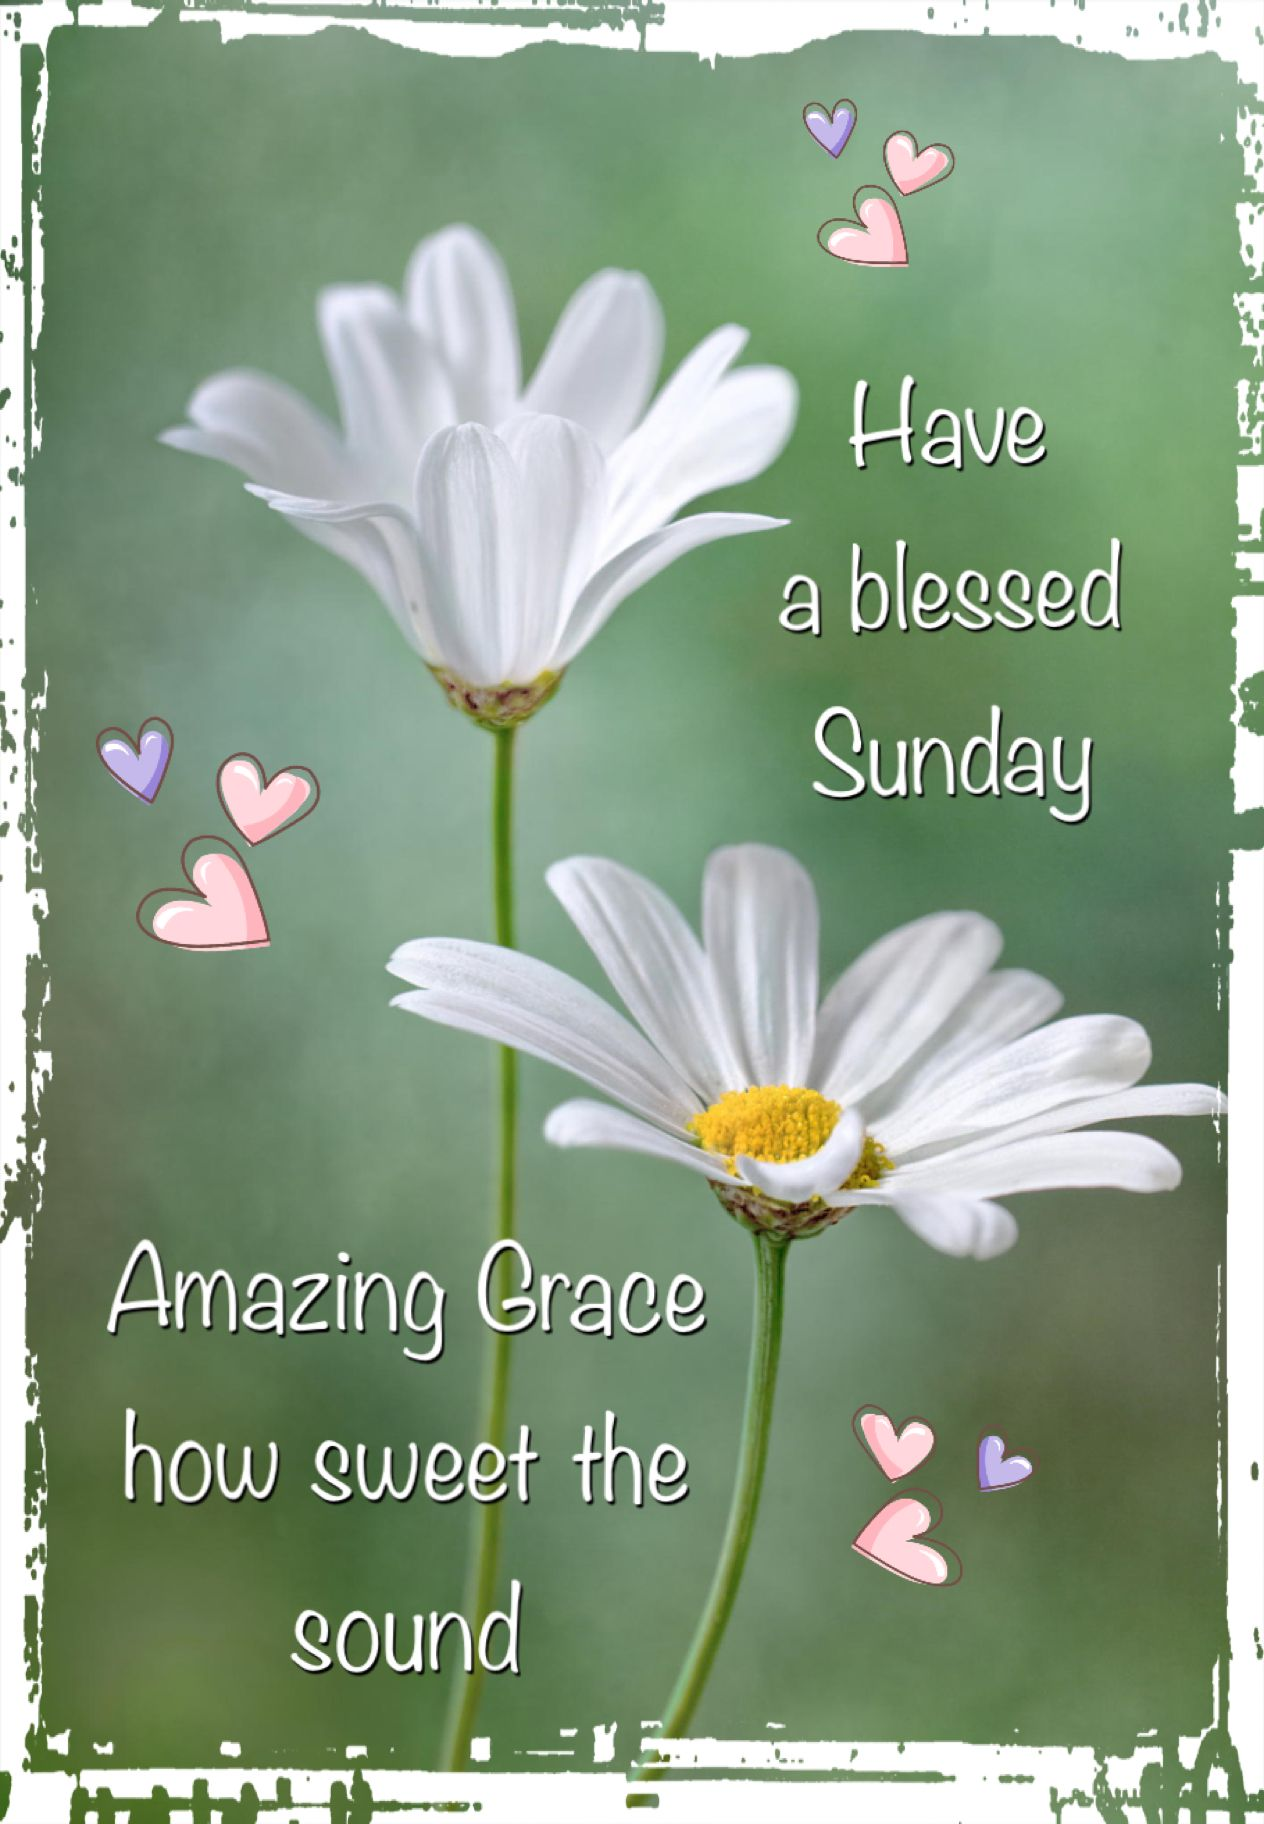 Praying You Have A Sunday Full Of The Love Of Our Lord My Dear